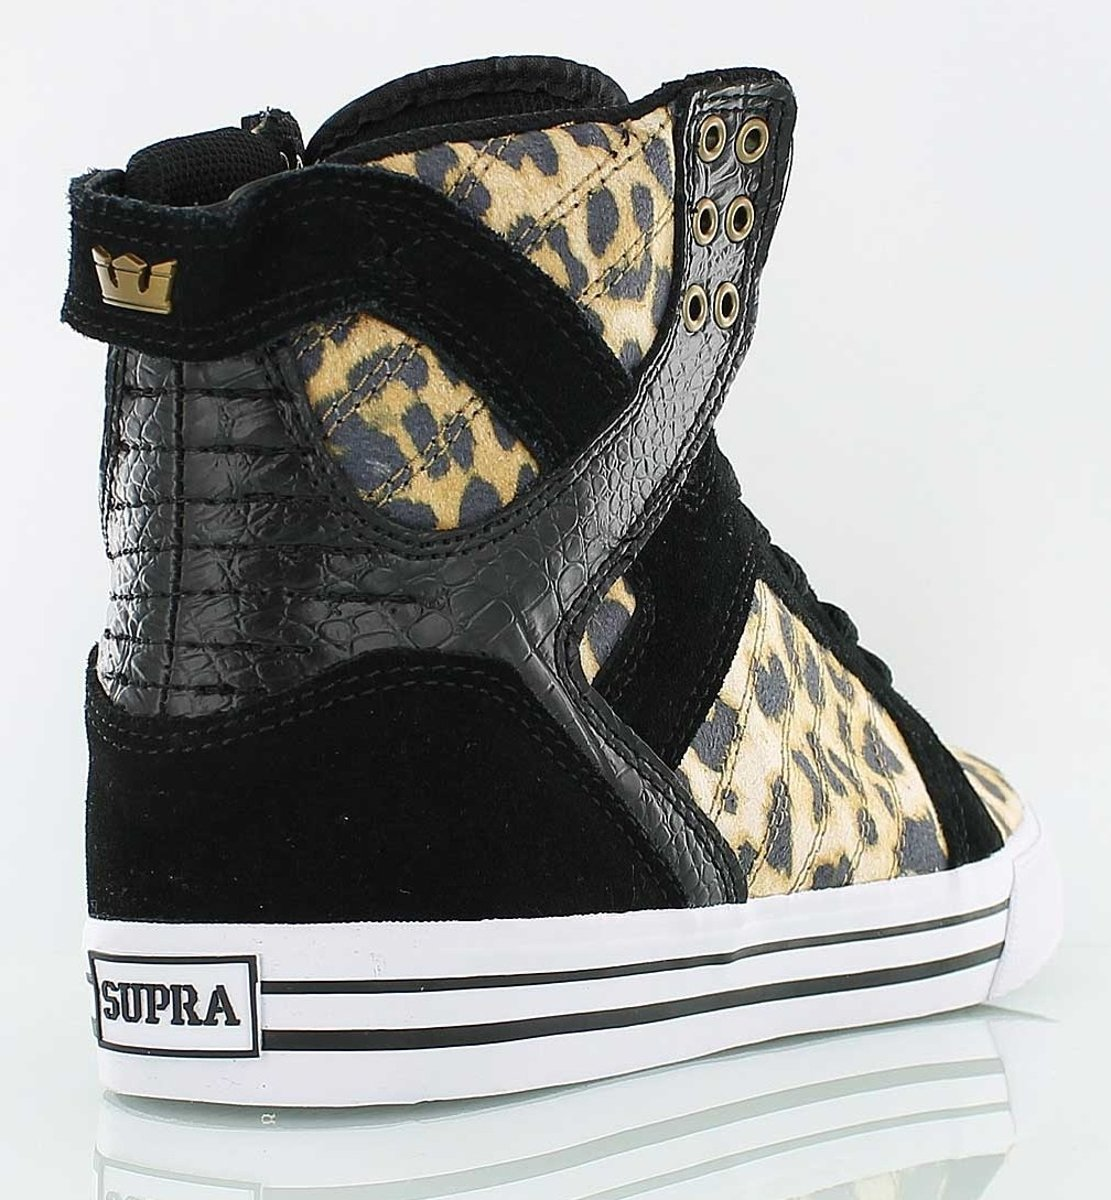 Supra Chaussures Skytop Léopard / Noir Taille 36 1Ly2W